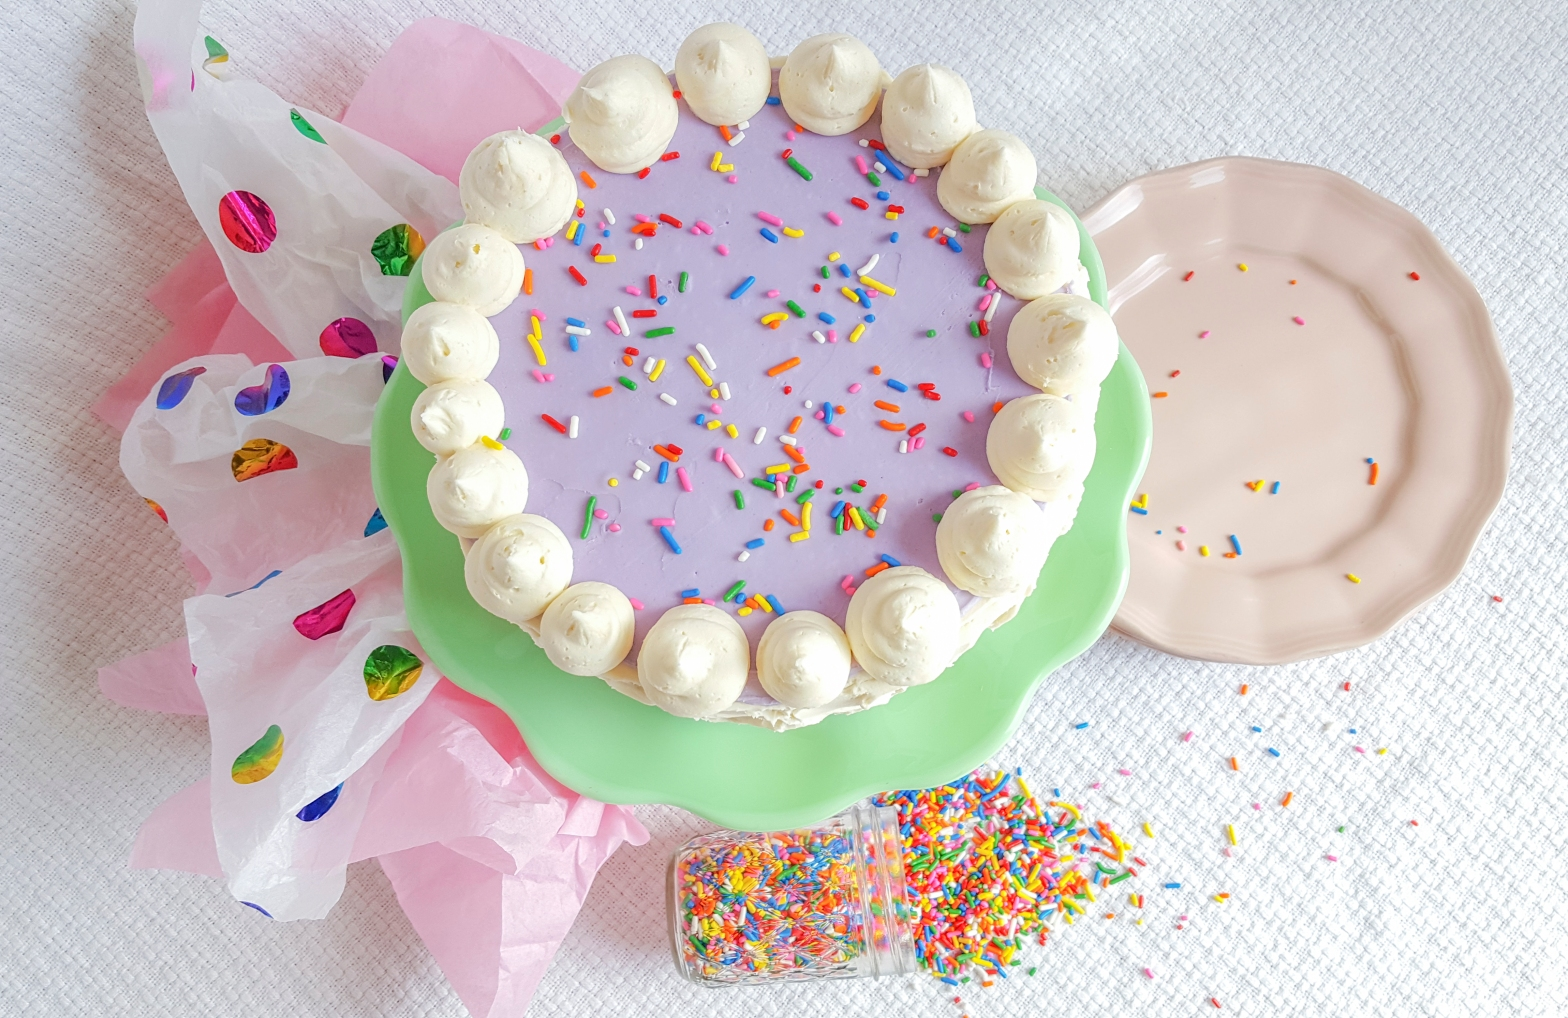 Superb Sugar Cookie Layer Cake Edible Cookie Dough Faust Bakes Funny Birthday Cards Online Drosicarndamsfinfo